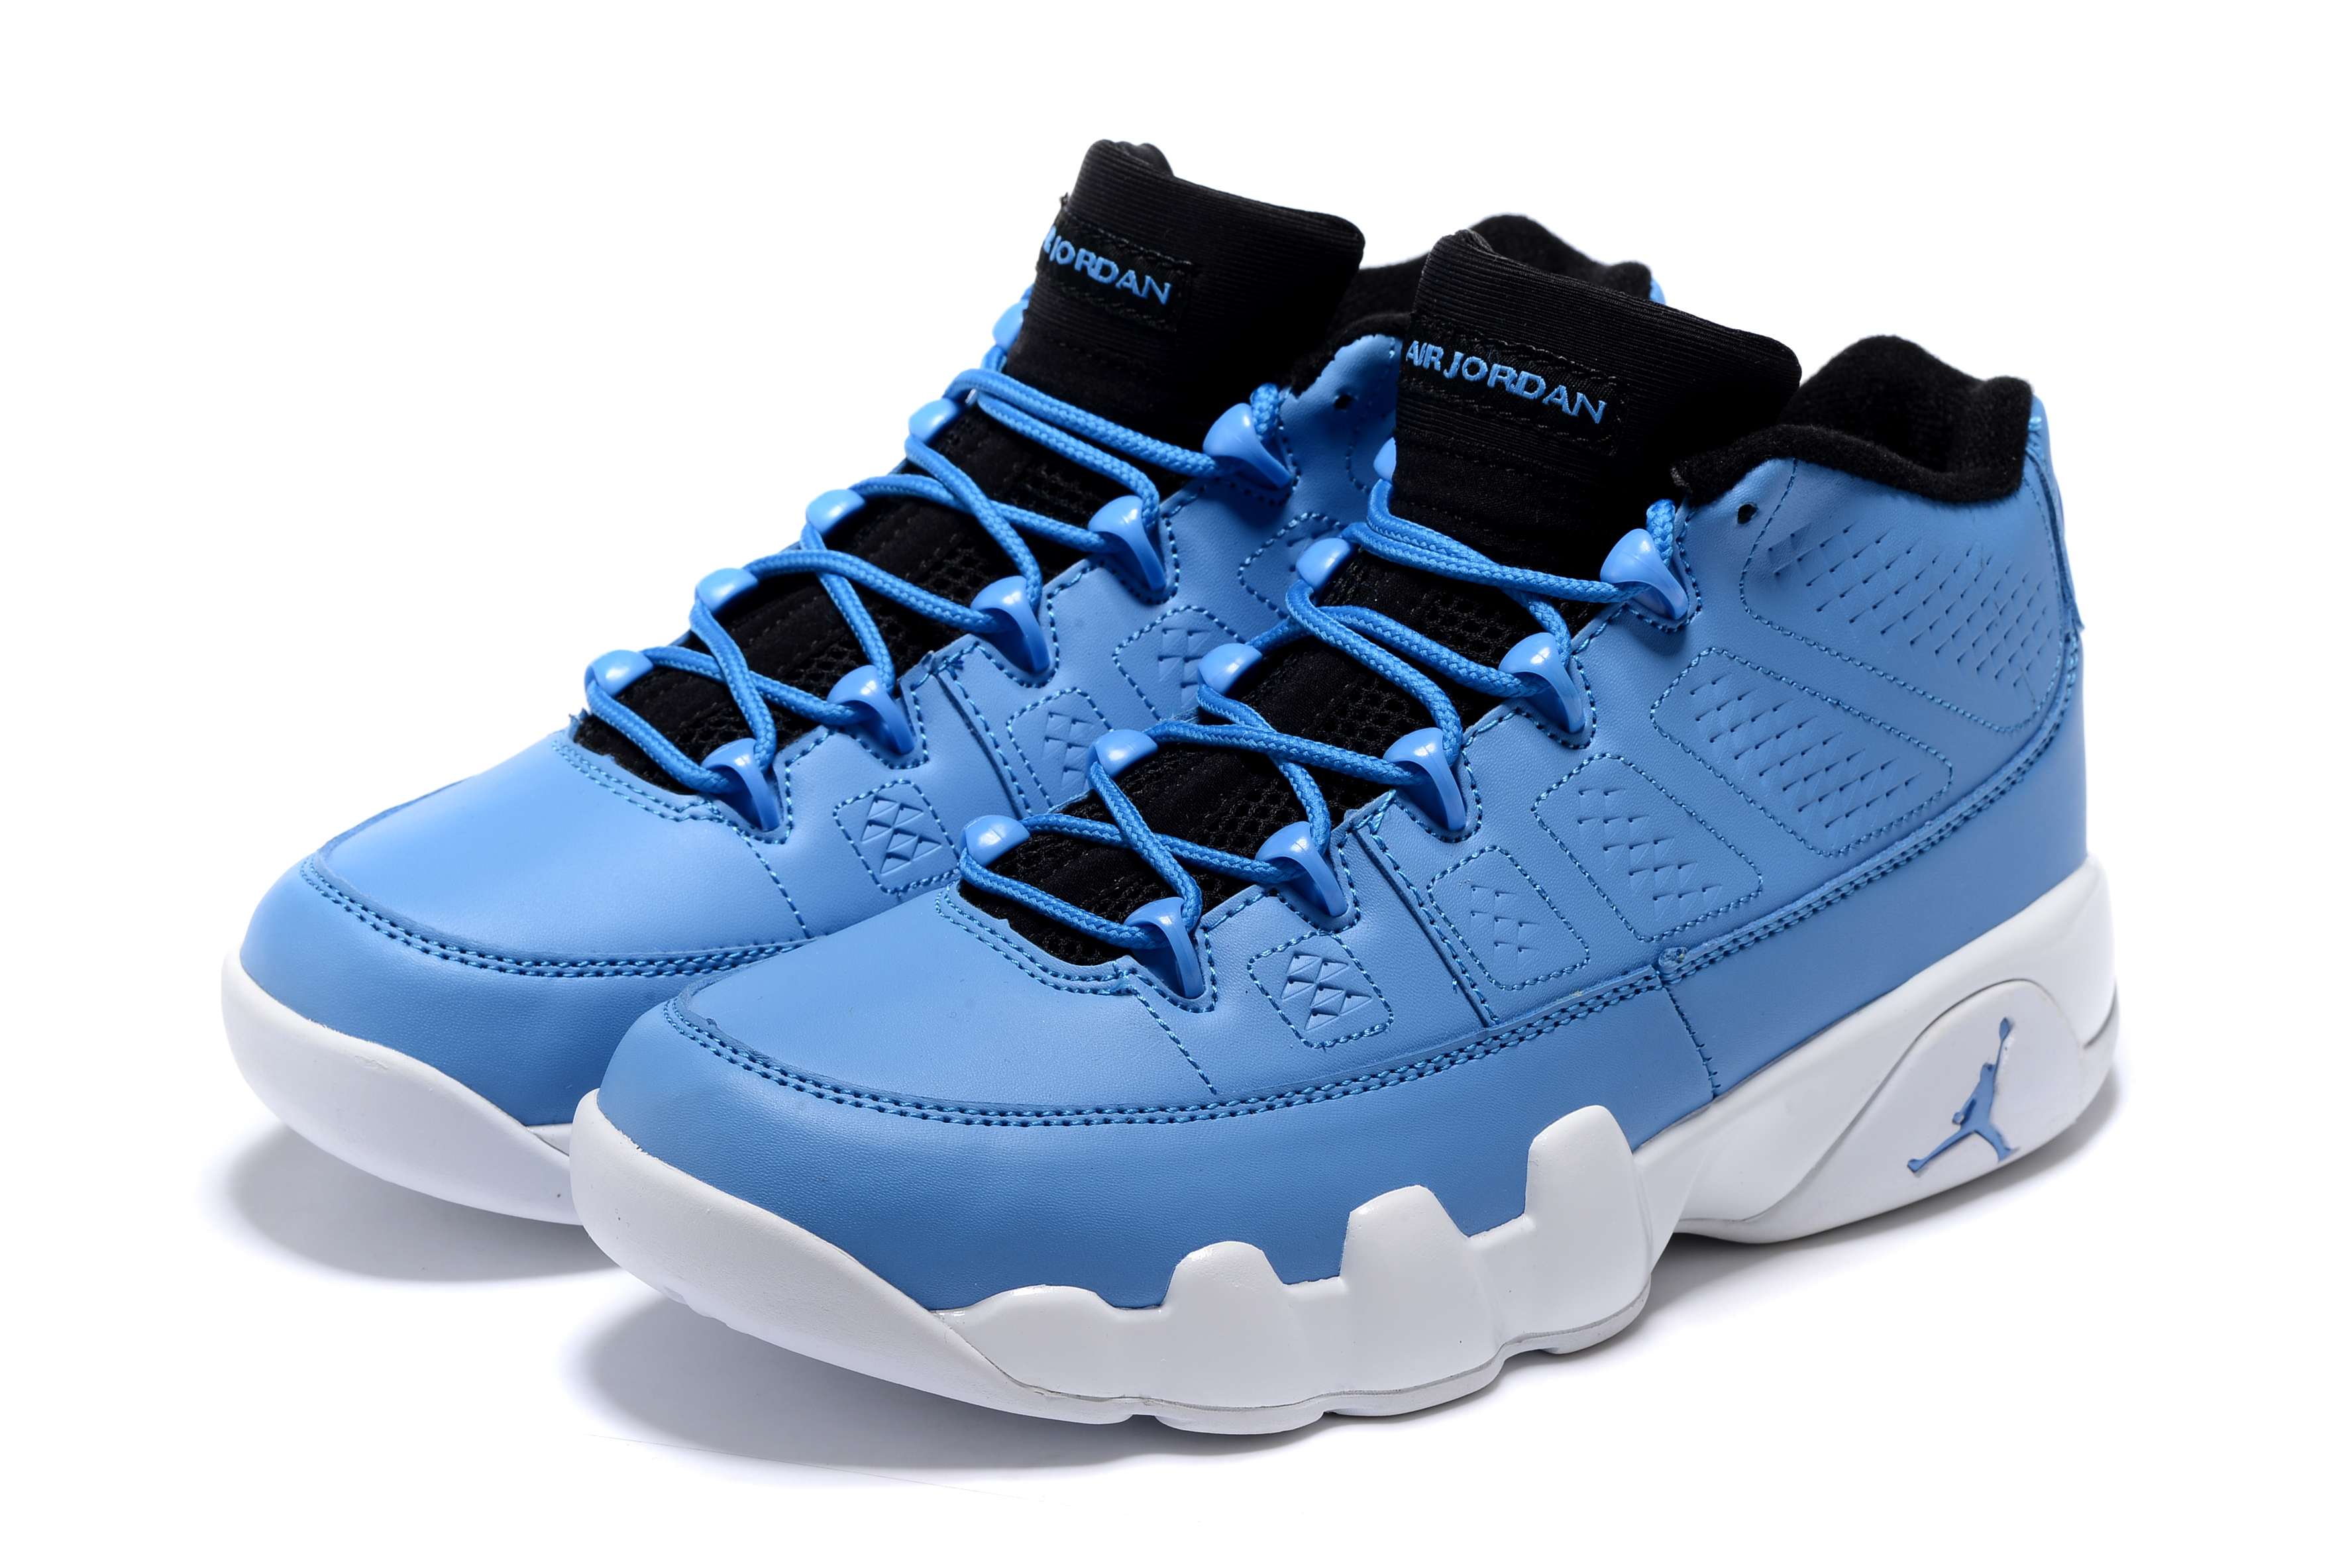 competitive price 4e853 47fd1 Men's Air Jordan 9 Retro Low